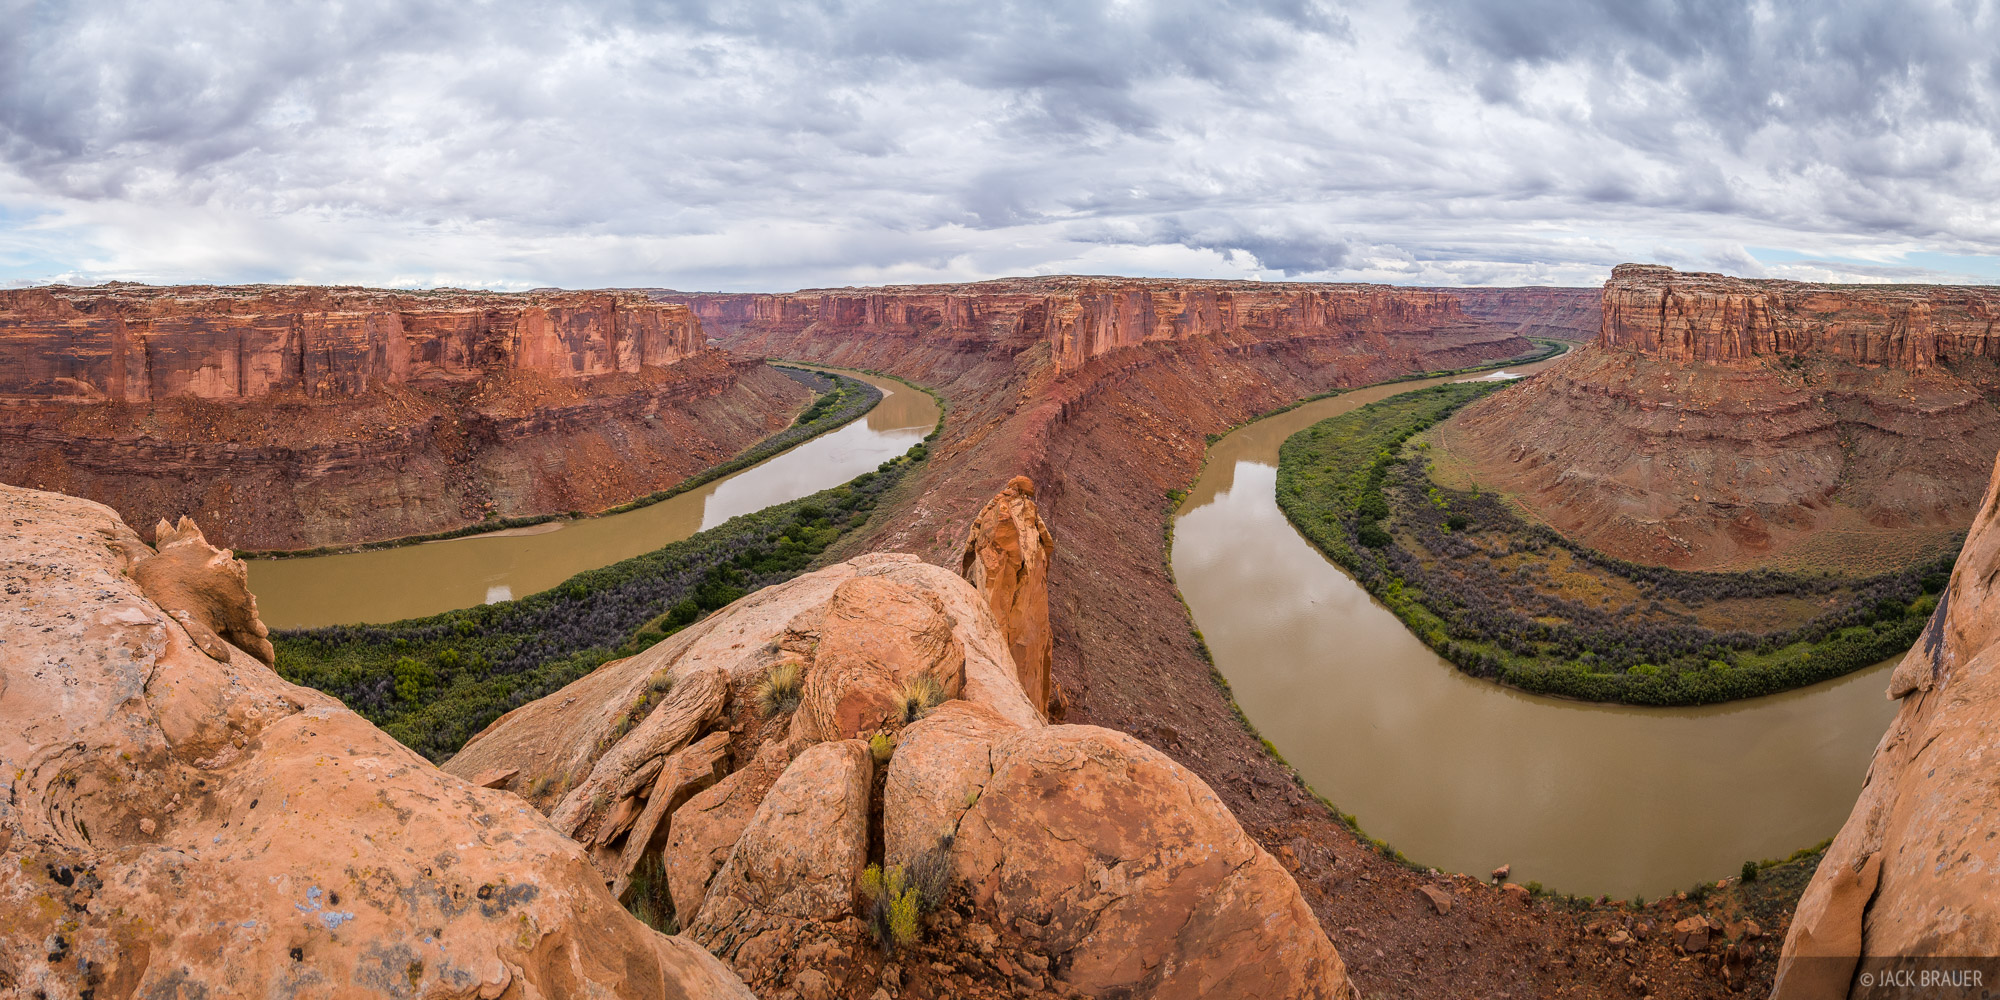 Overlooking a giant gooseneck of the Green River. The river flows from the left, curves around out of sight, then comes back...